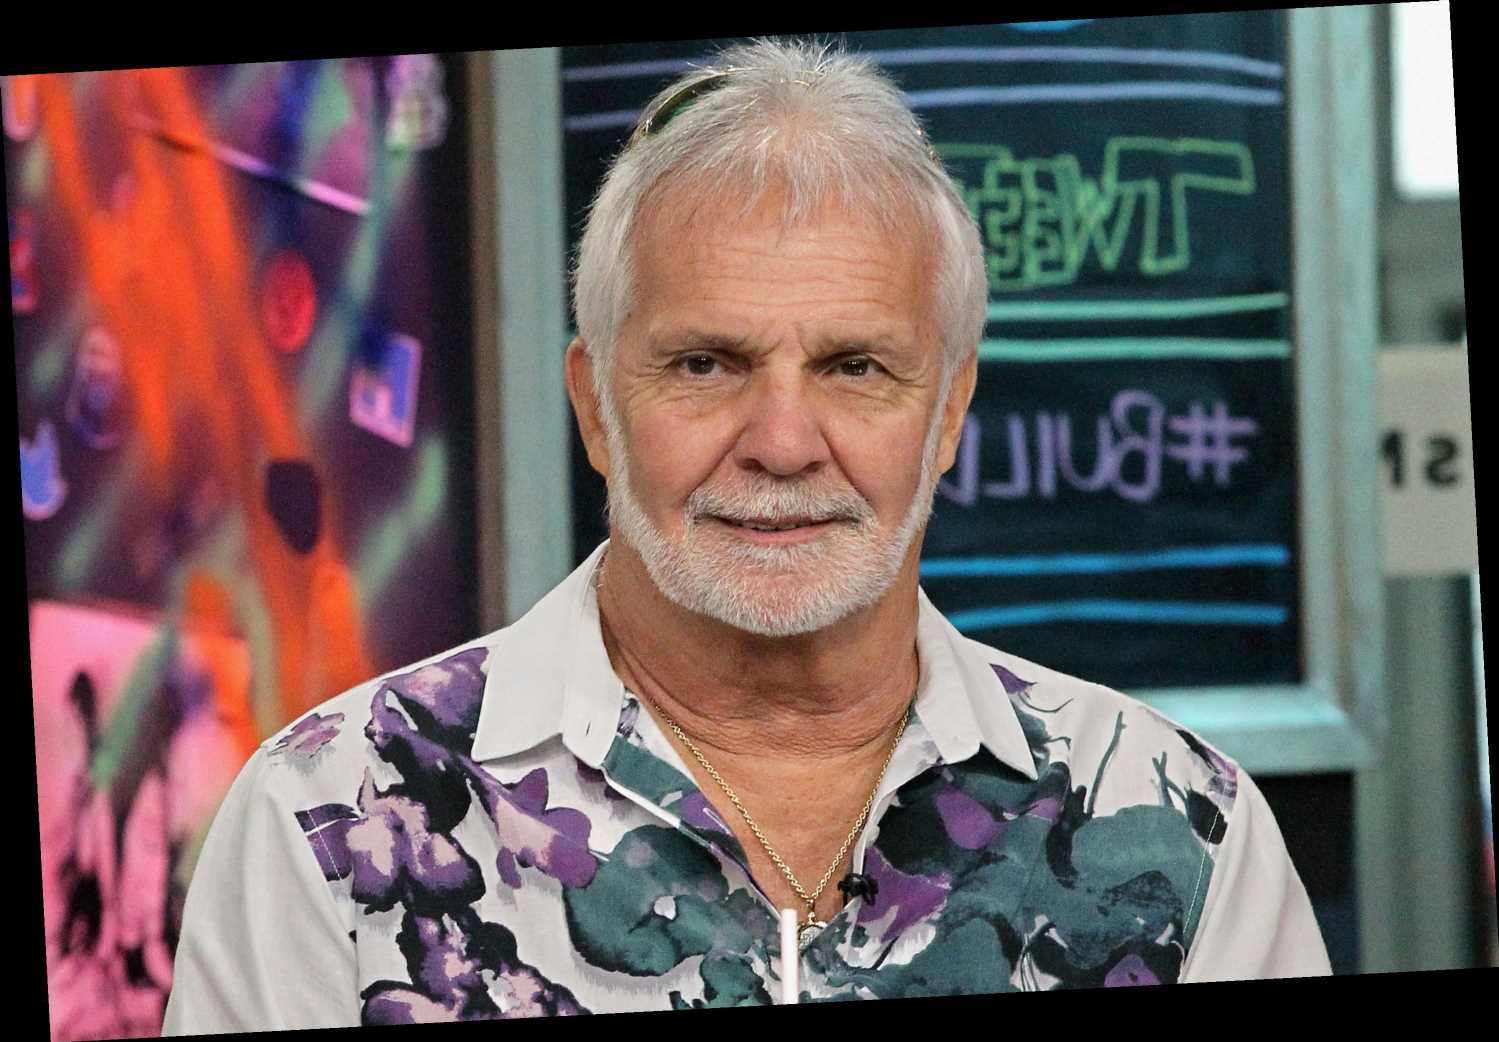 Bravo's Captain Lee Rosbach shares immense grief over son's accidental overdose